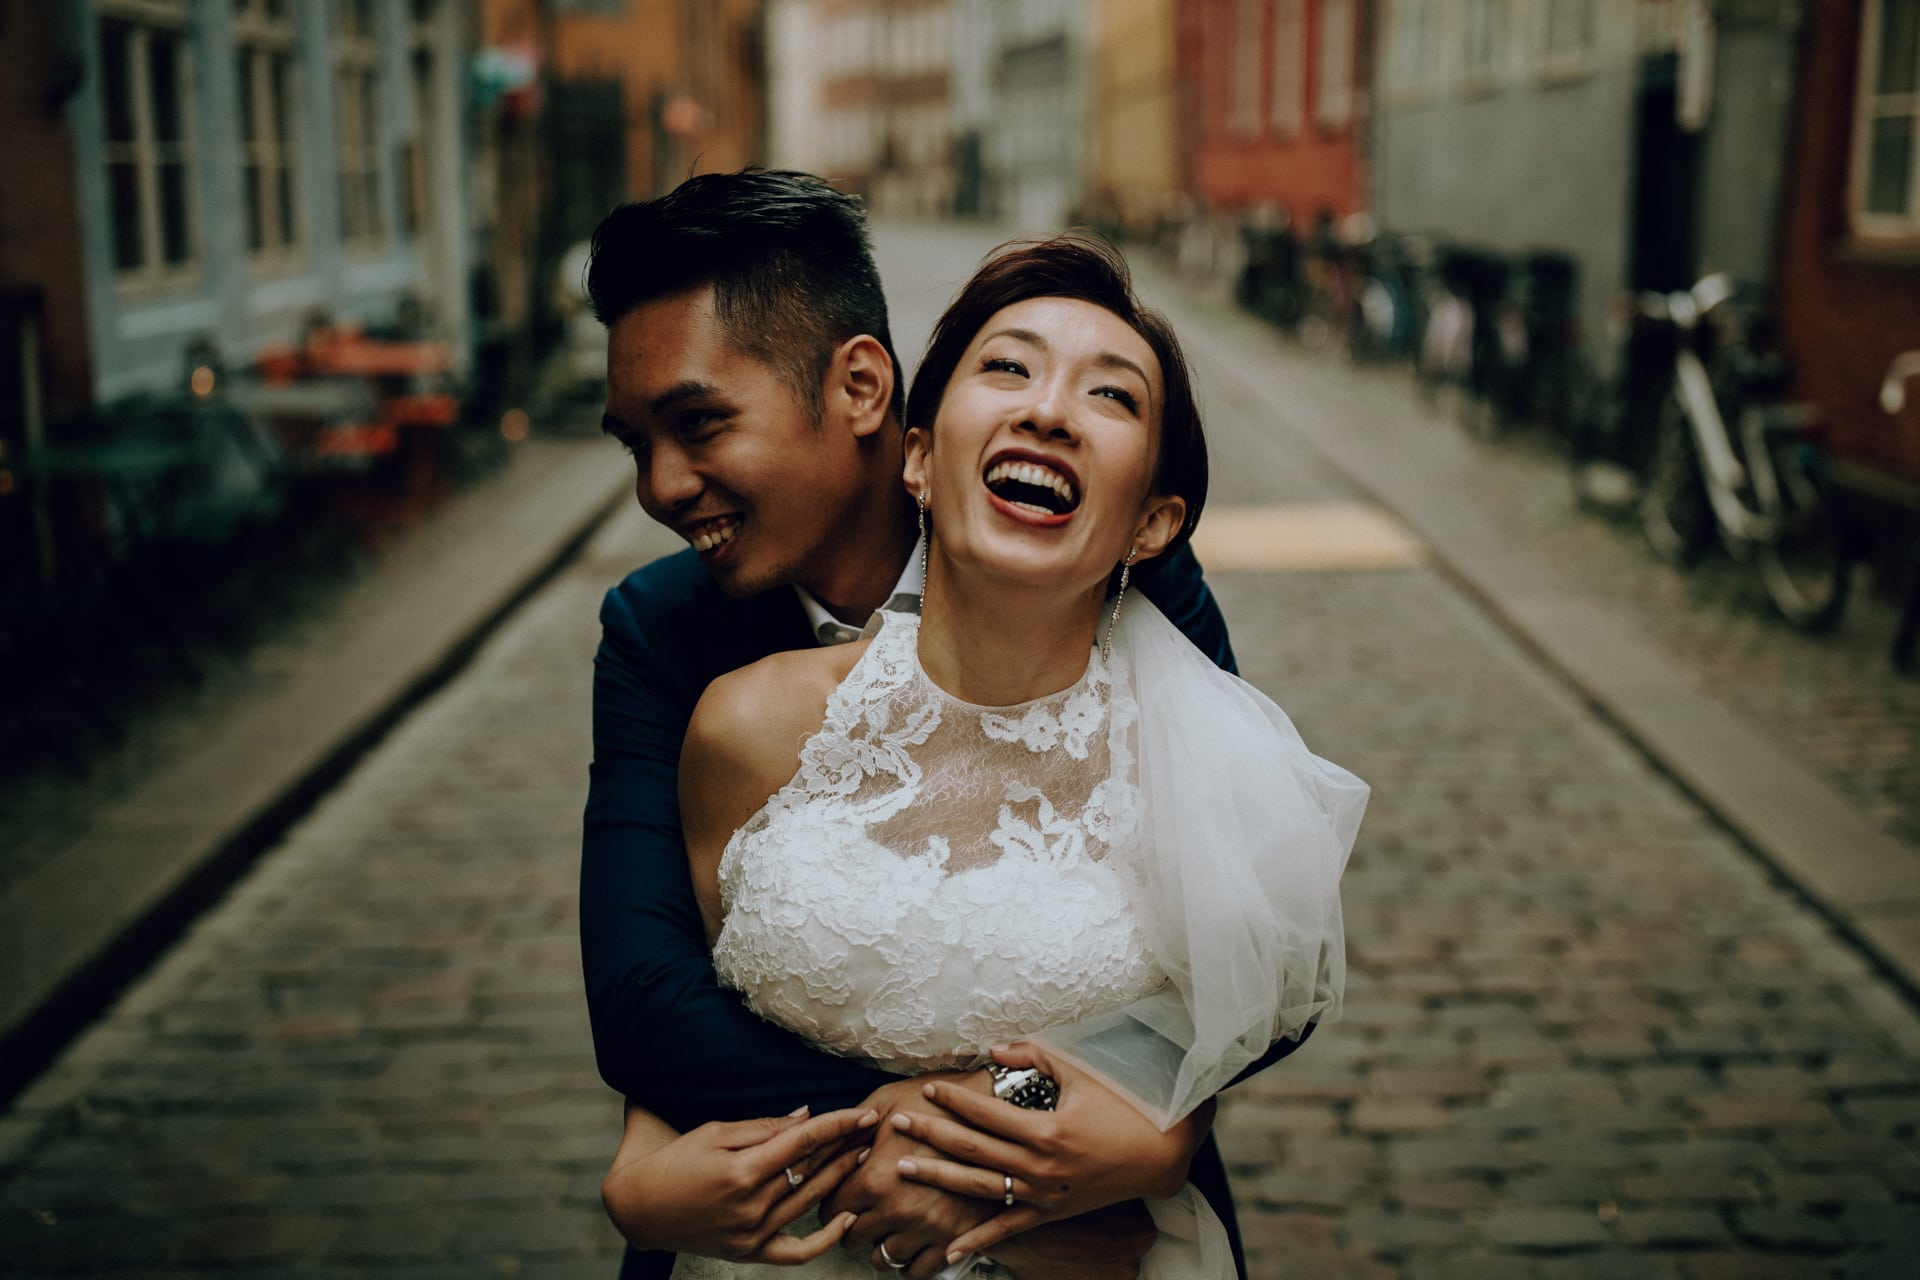 The groom is hugging his bride in the streets of Copenhagen.